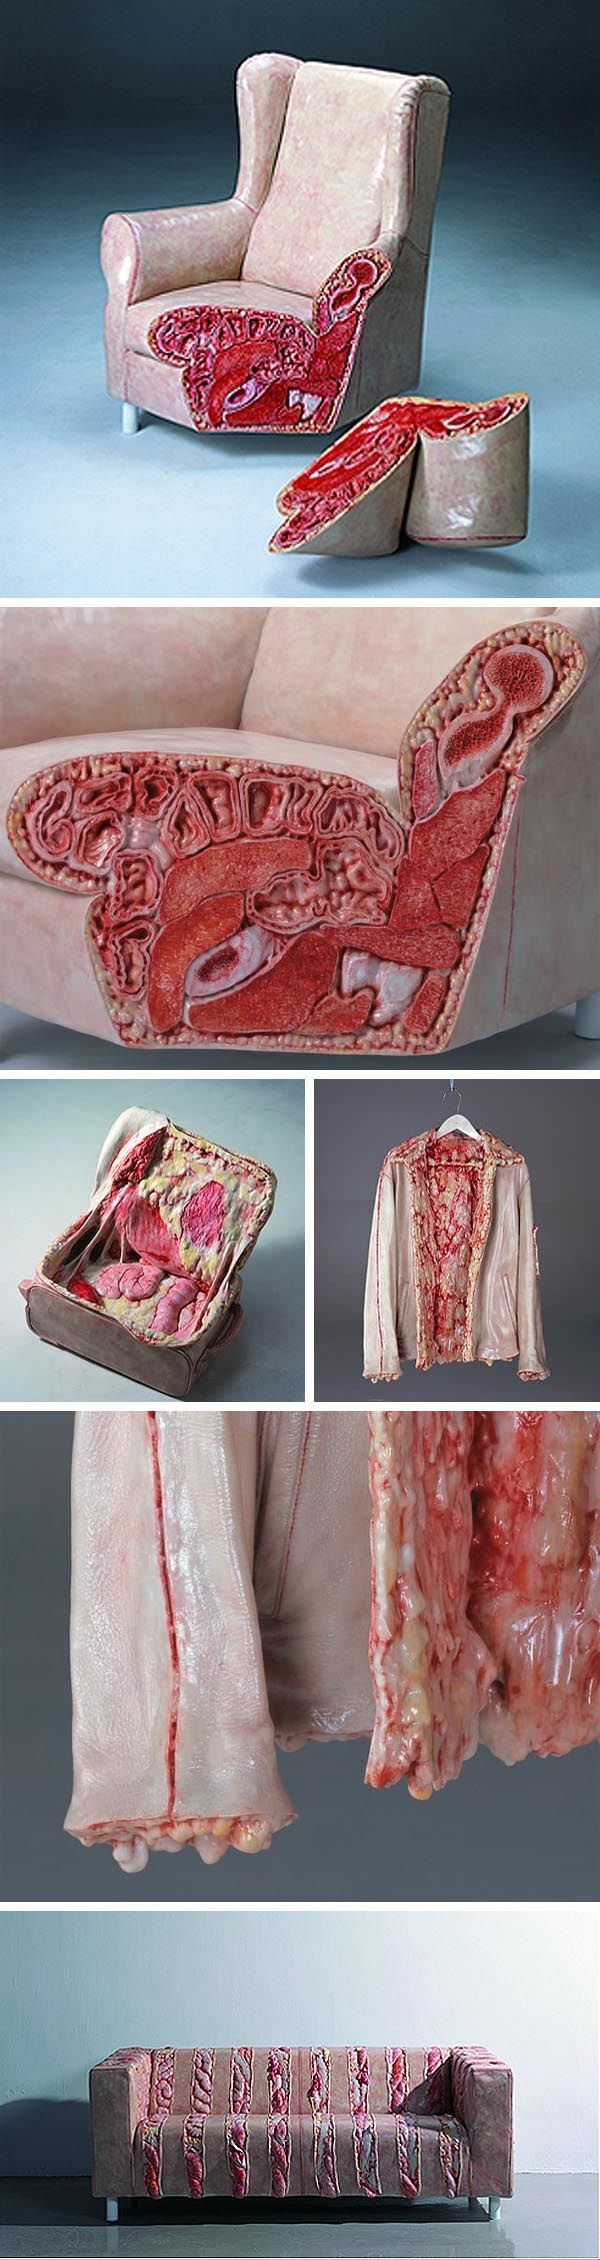 Cao Hui Gutsy sculpture, Resin sculpture with human/animal innards oozing out at seams